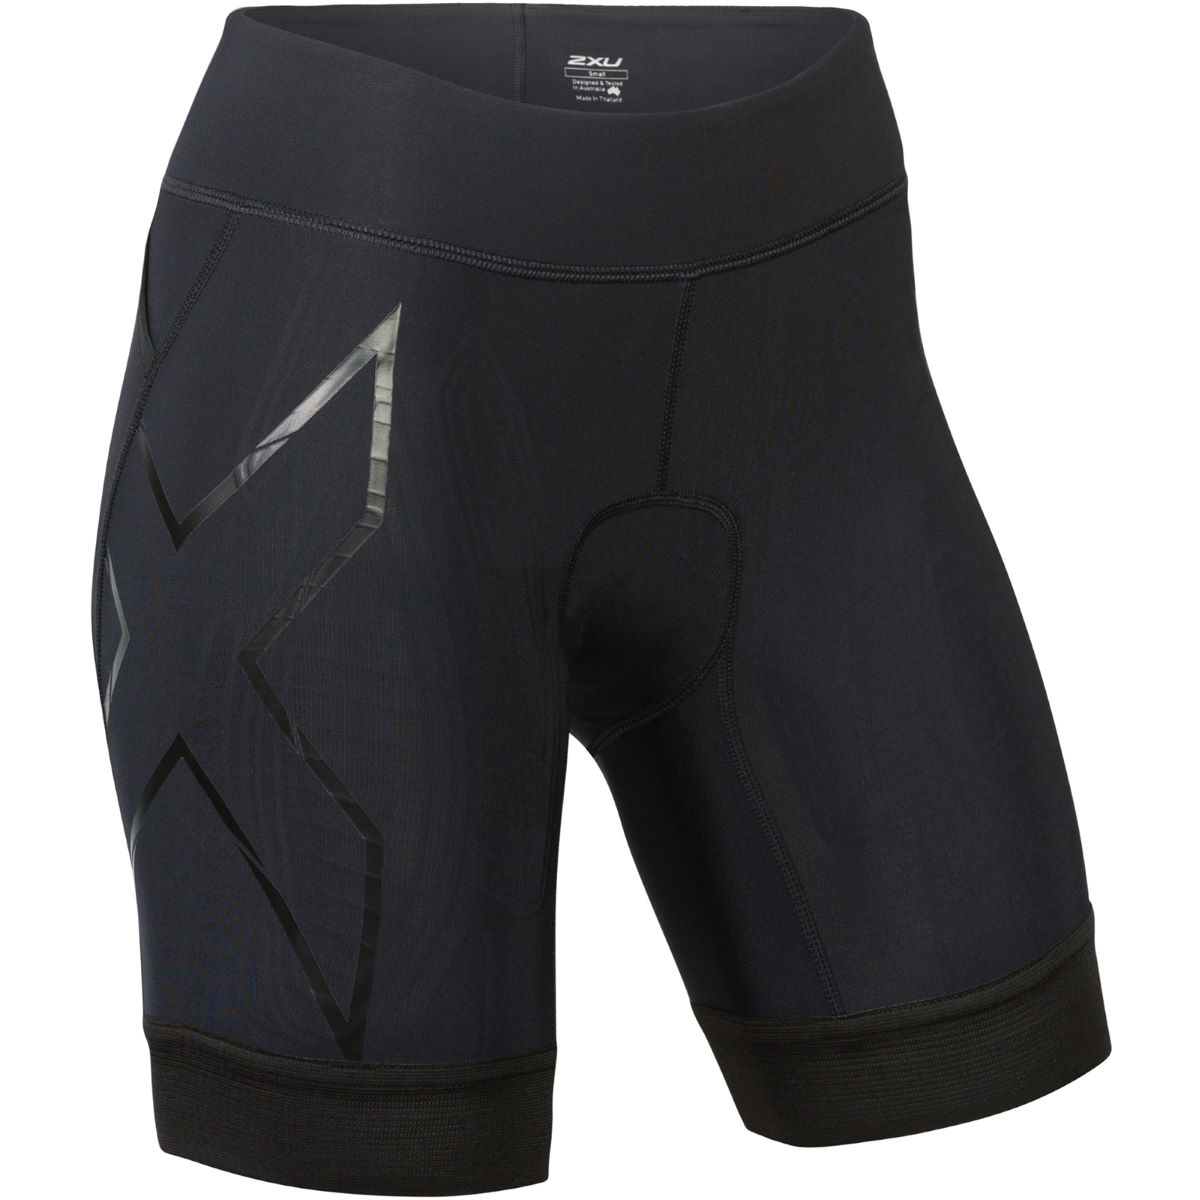 2XU Women's Compression Tri Short - Culotes de triatlón